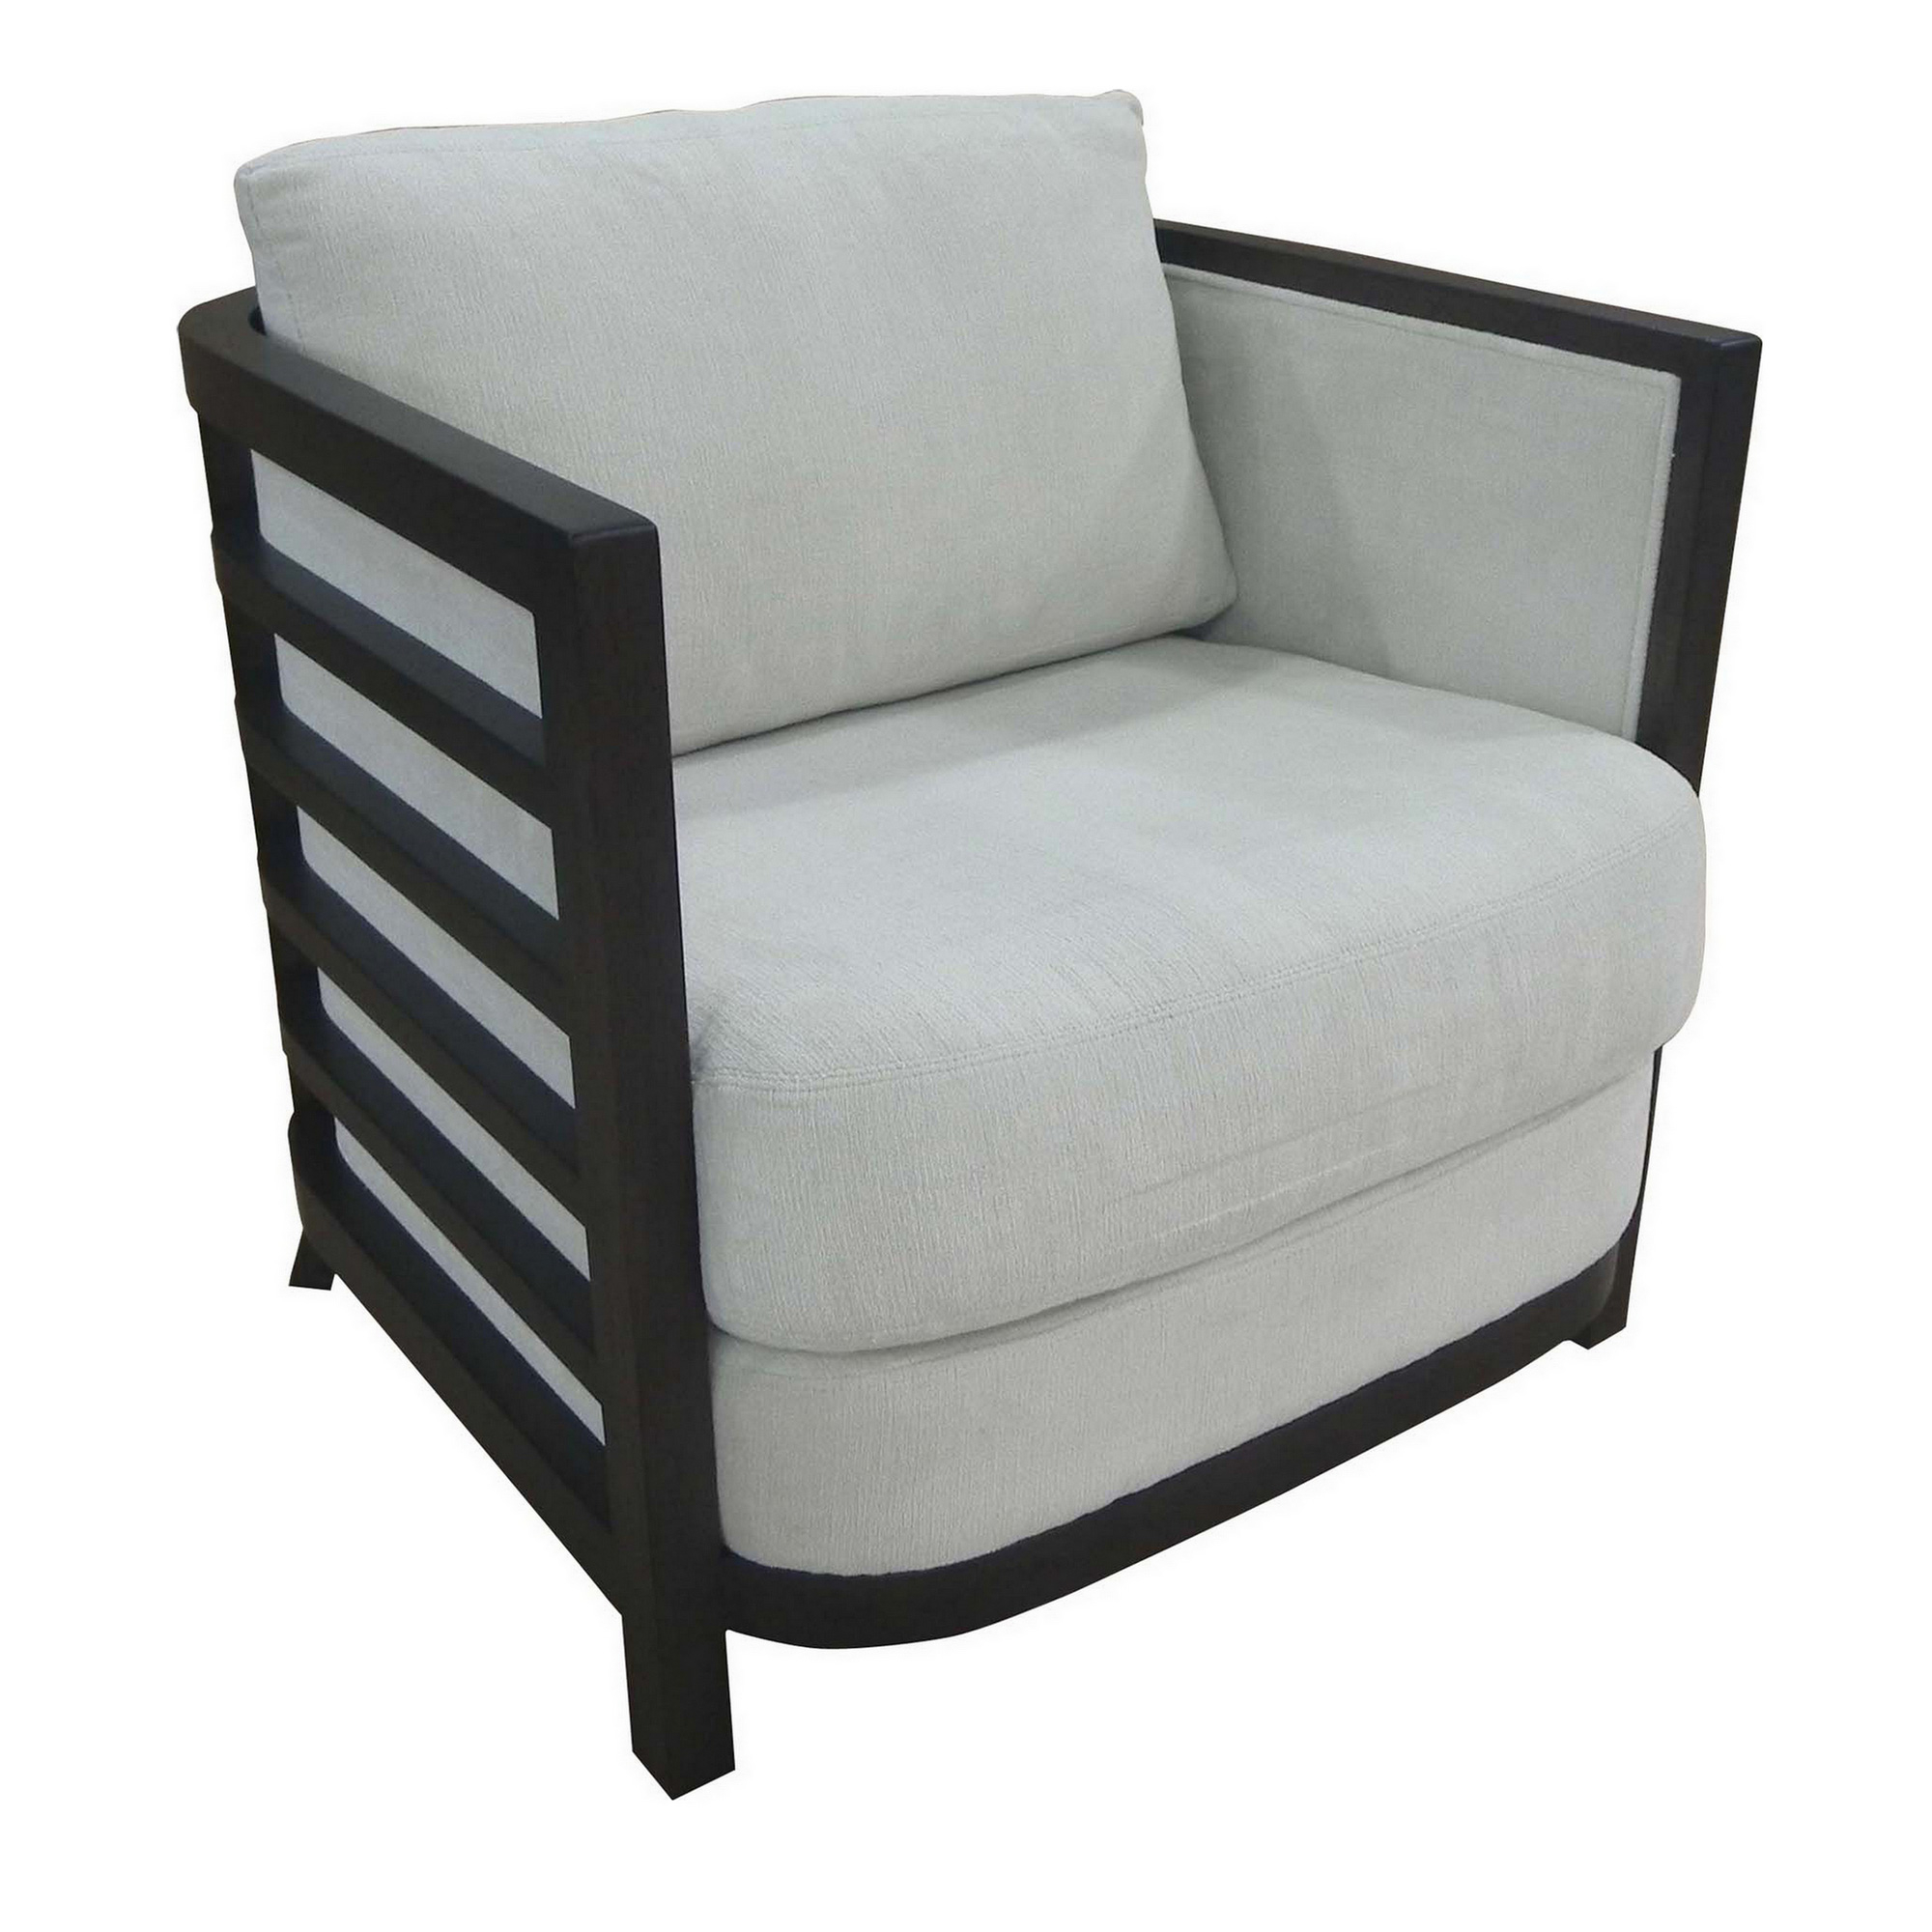 Maria Yee Montecito Barrel Chair